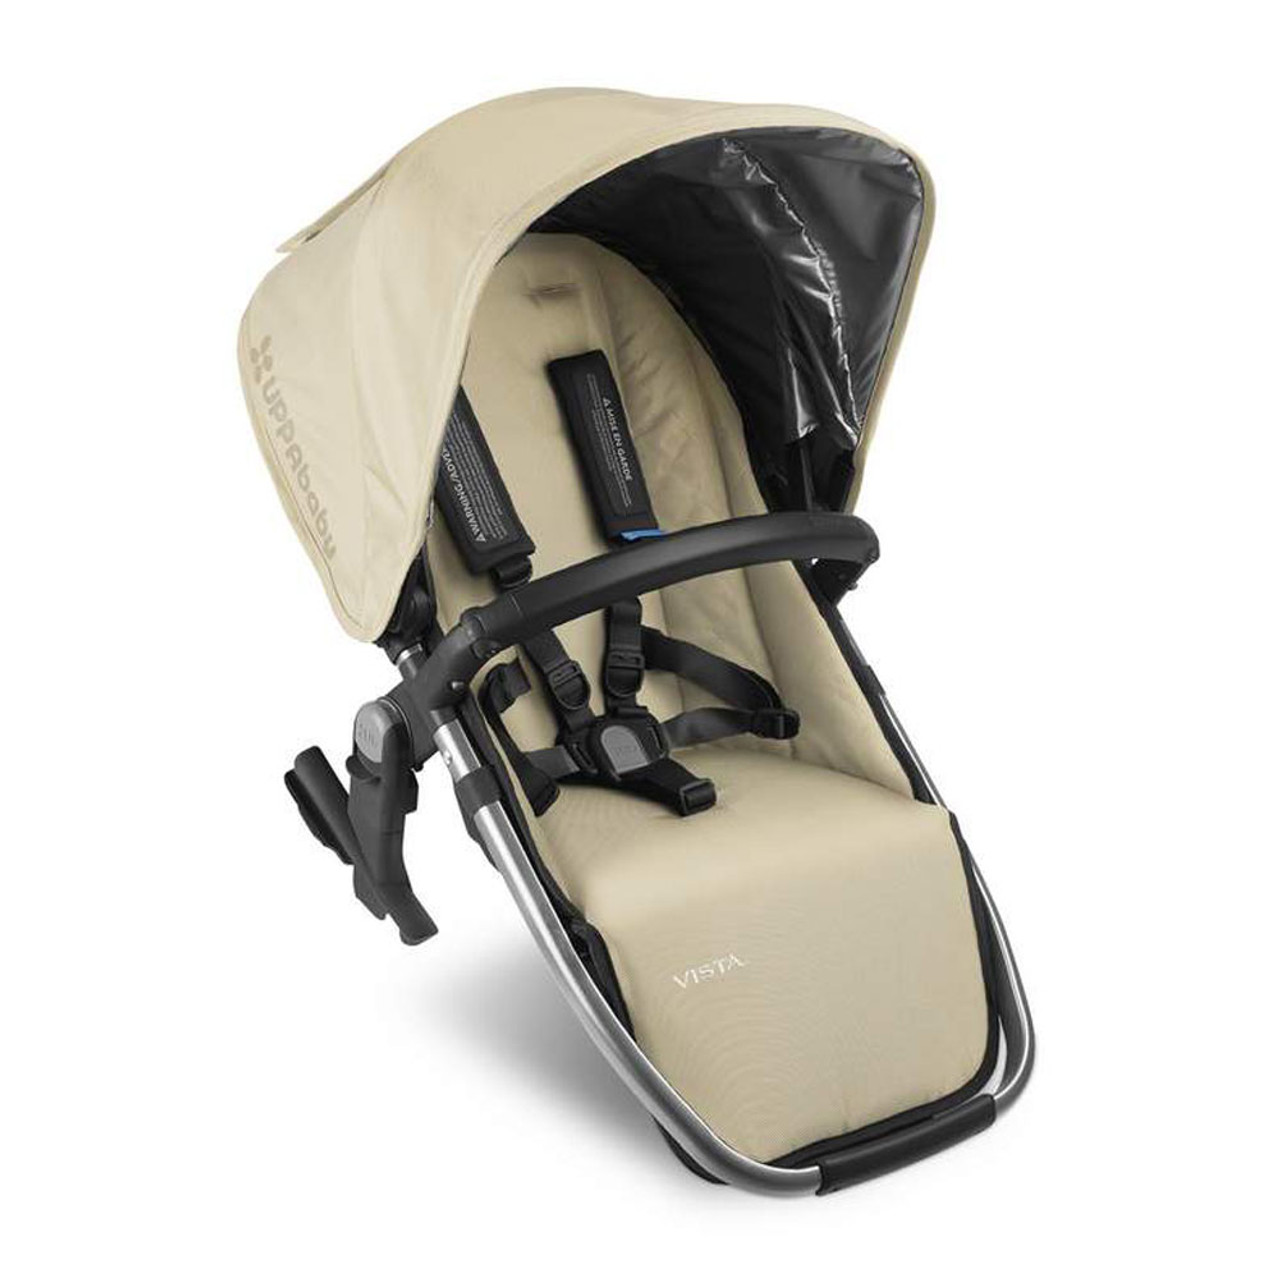 UPPABaby Vista RumbleSeat 2015 - Lindsey (Wheat) - Dear-Born Baby